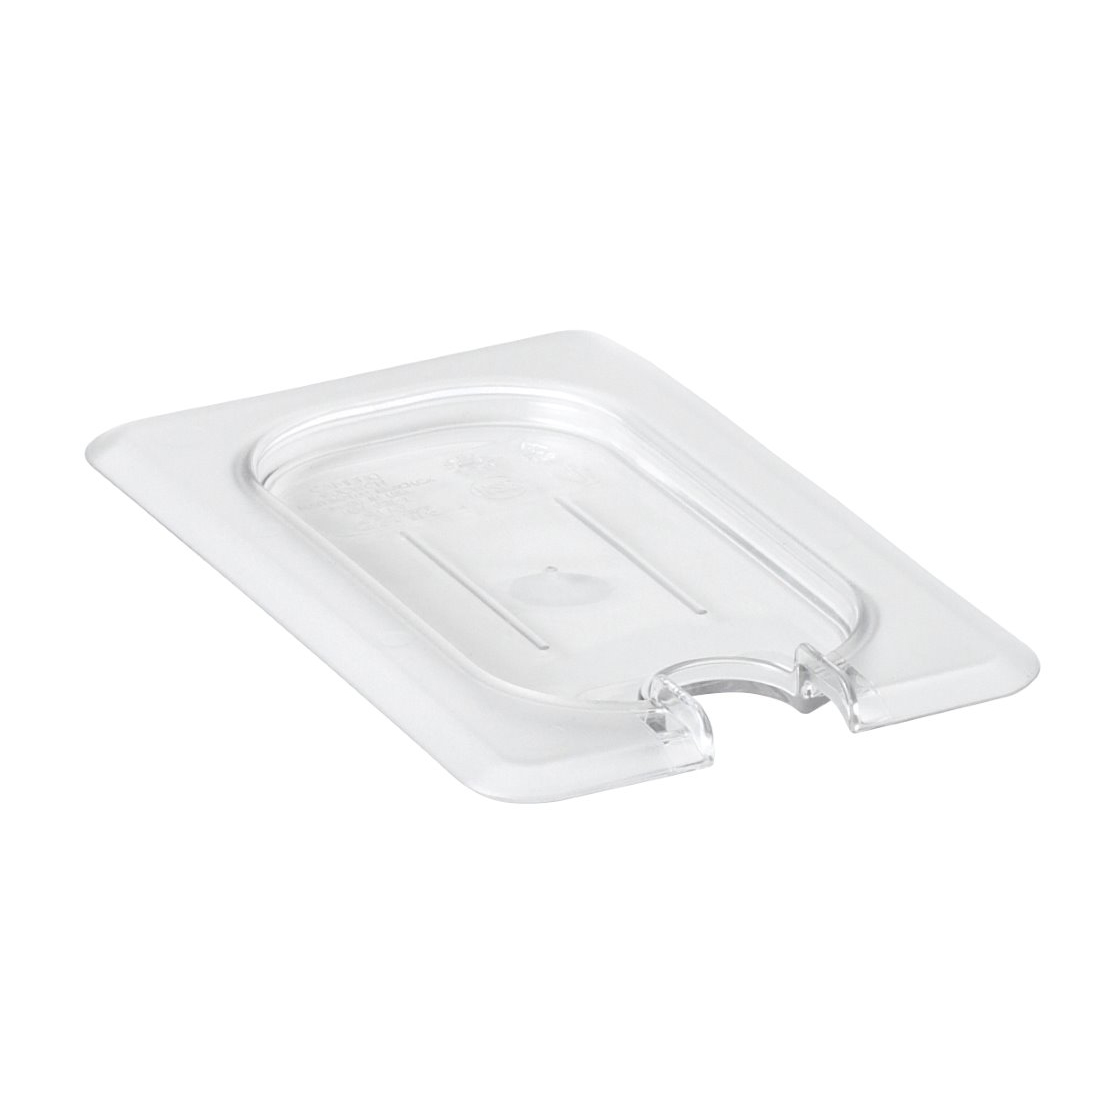 Cambro 90CWCN135 Camwear Food Pan Cover, 1/9 size, flat, notched, polycarbonate, clear, NSF